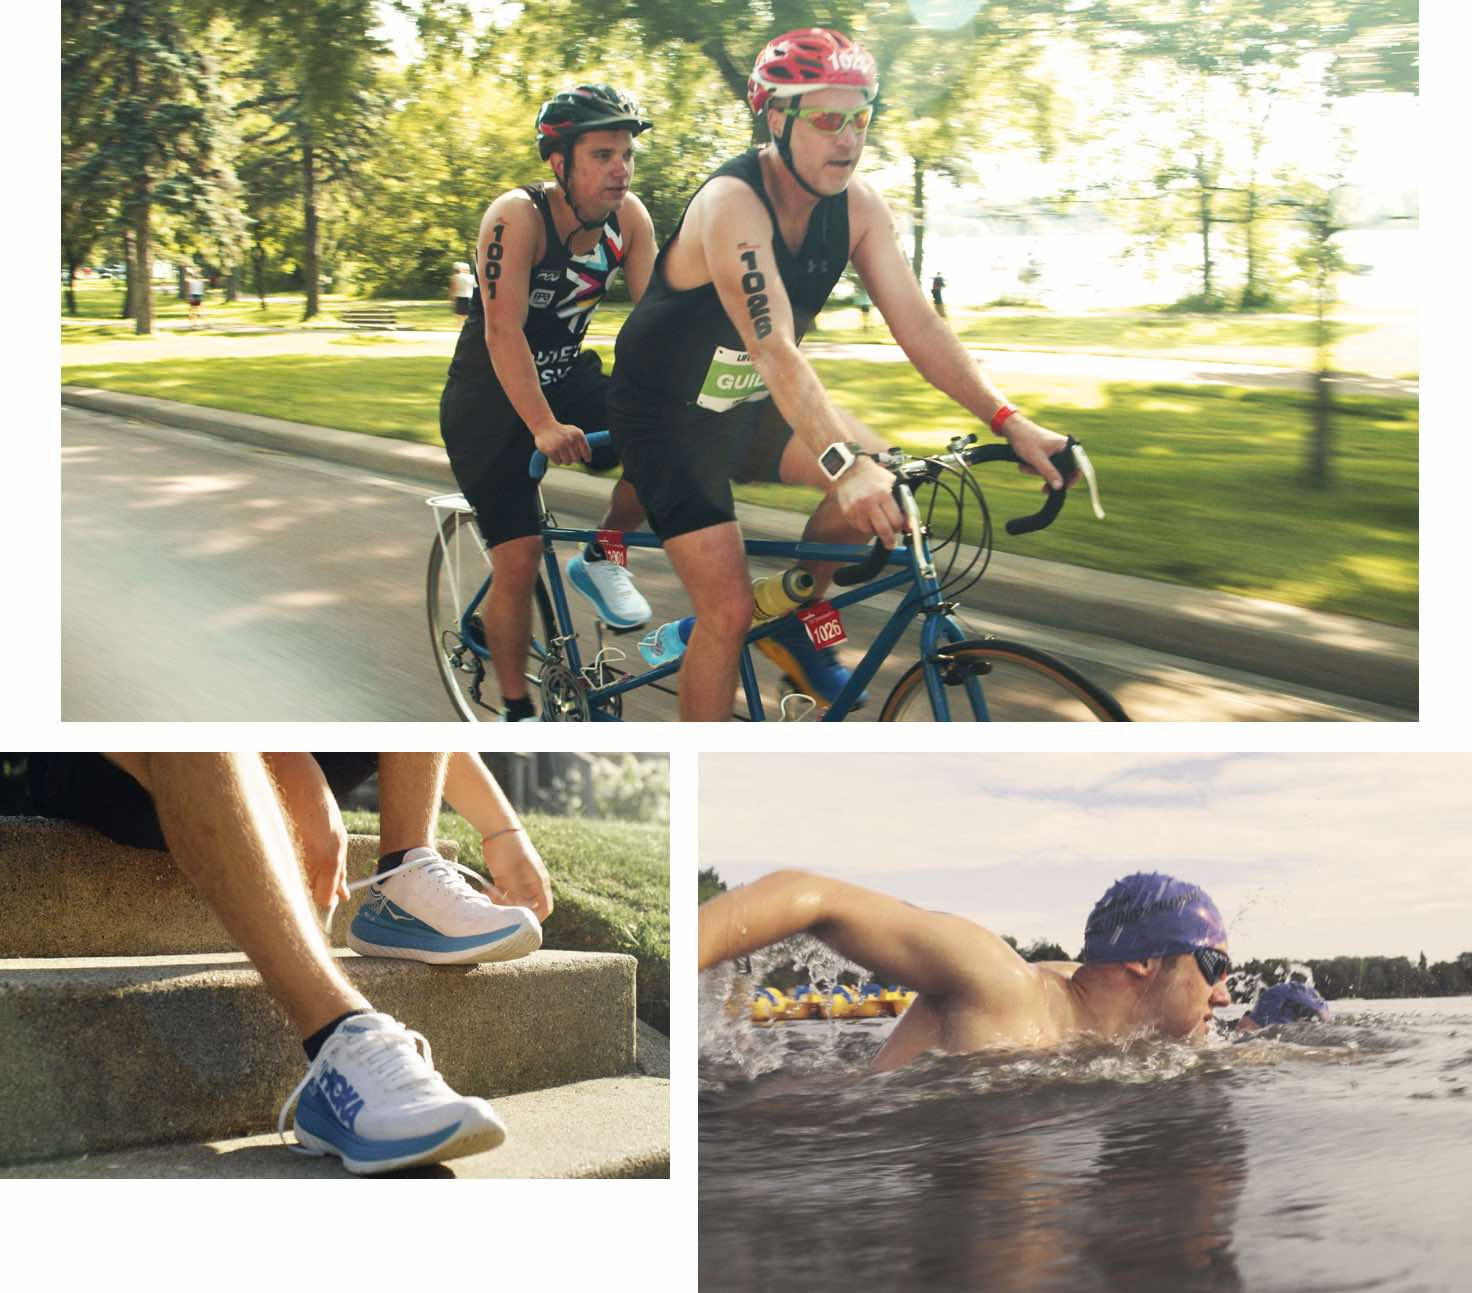 A collage image depicting Louie McGee tying his running shoes, swimming in a lake during a triathlon race and running with his training partner